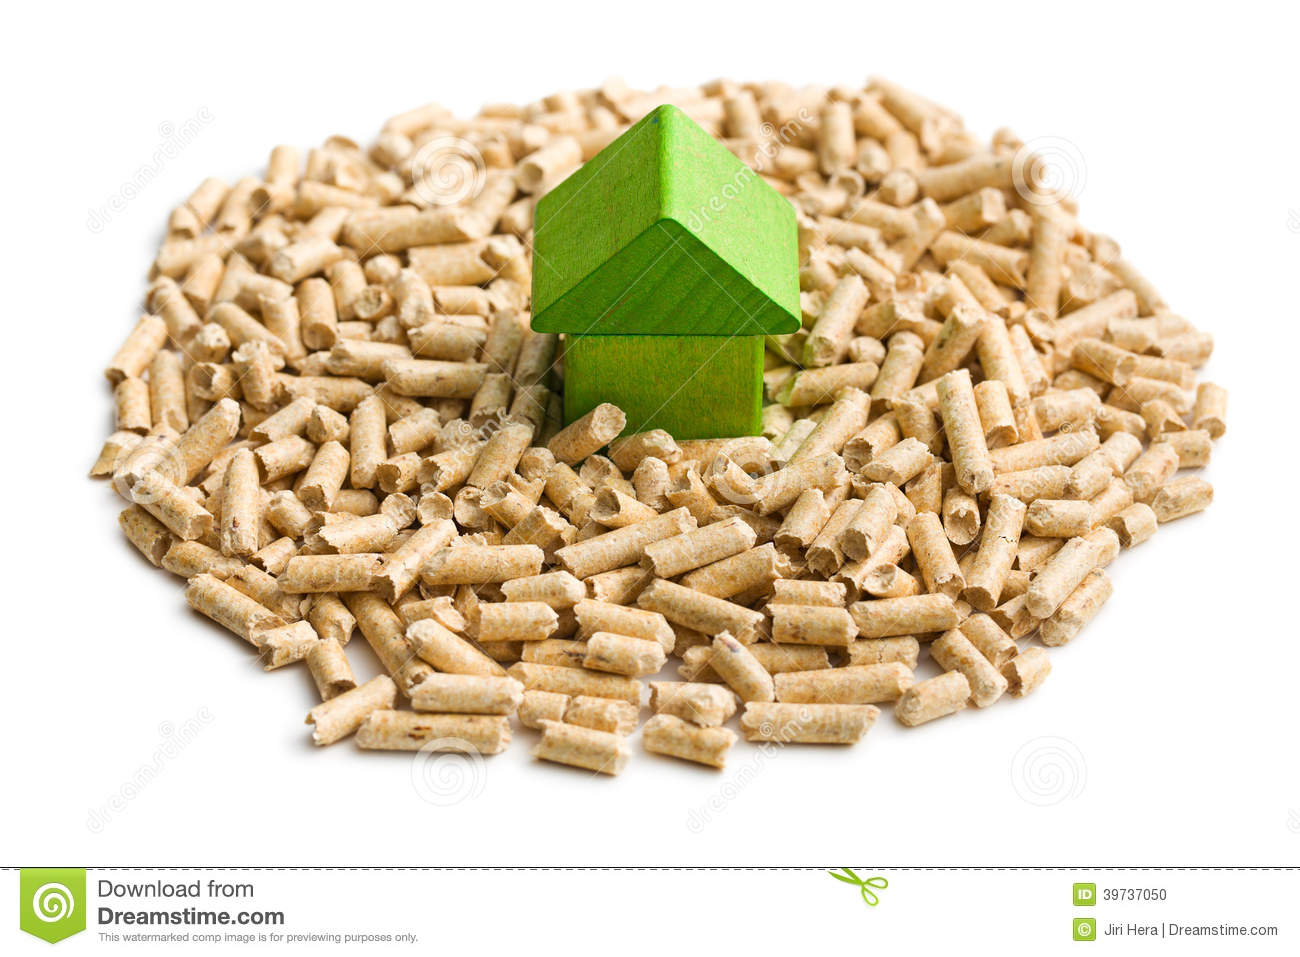 Wooden pellets with price tag royalty free stock image